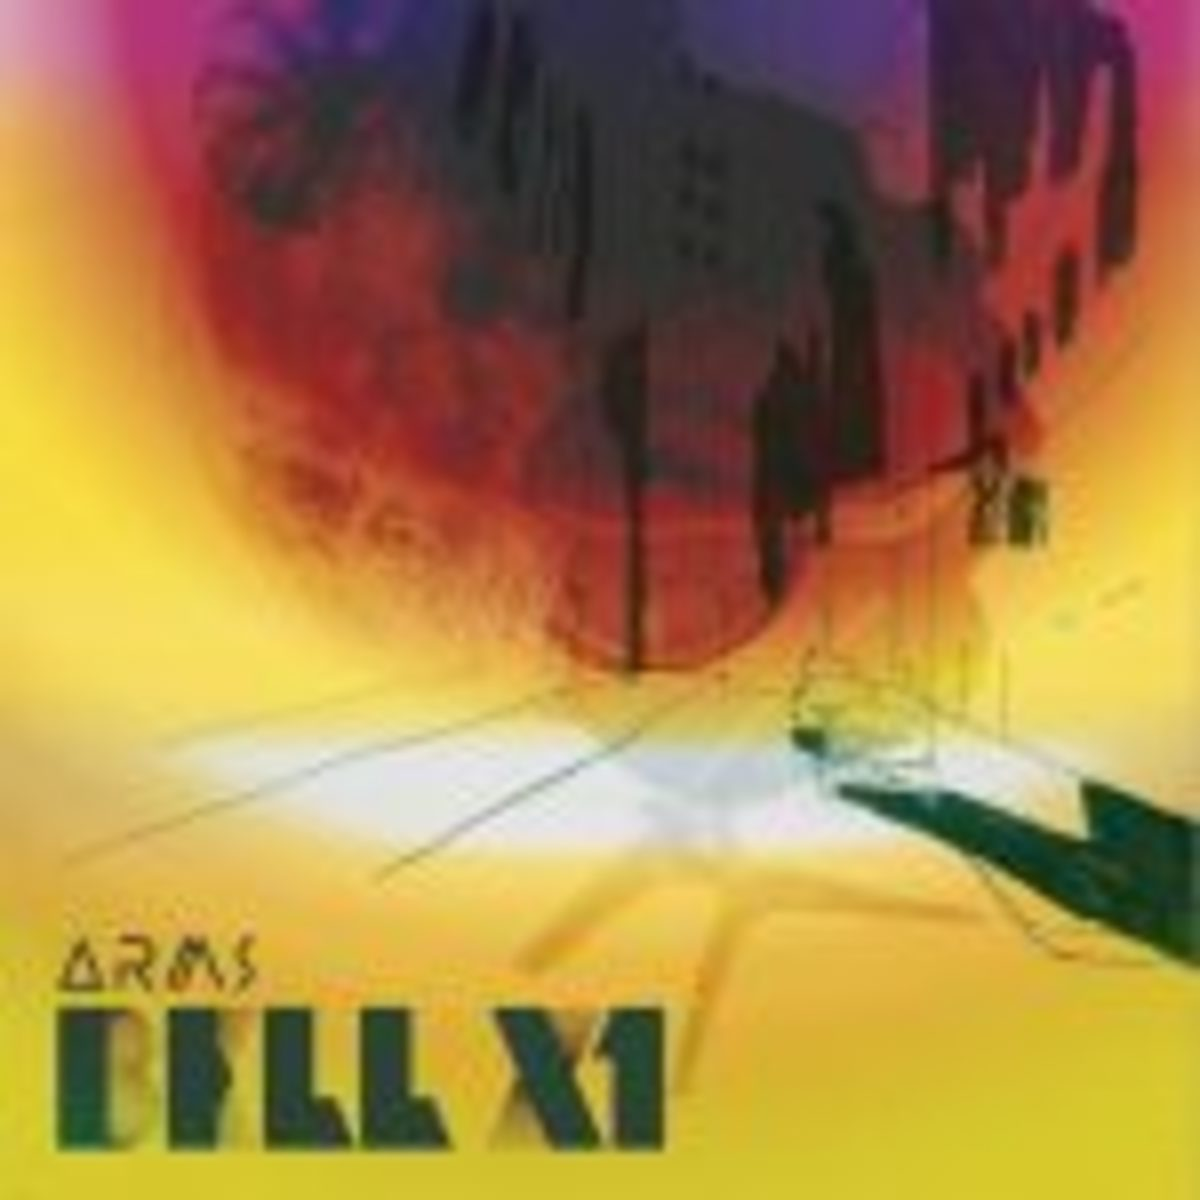 Bell X1 Cover Art-small